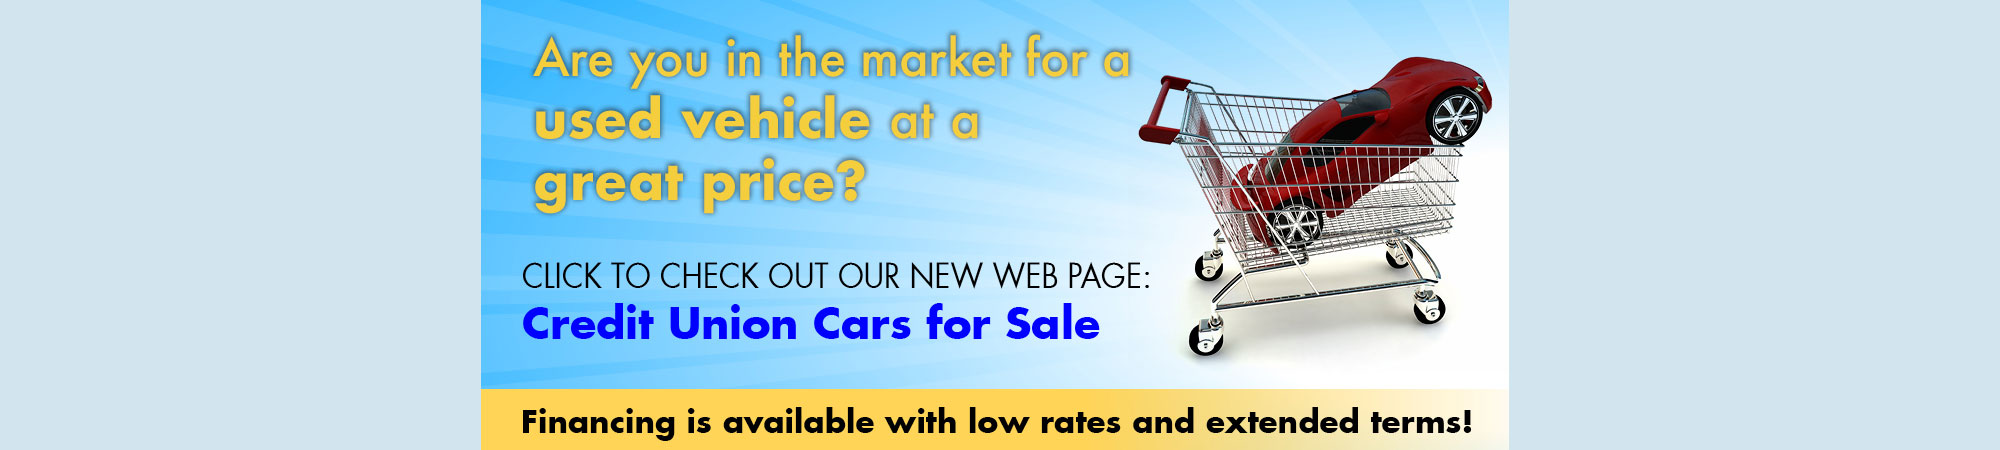 Are you in the market for a used vehicle at a great price?